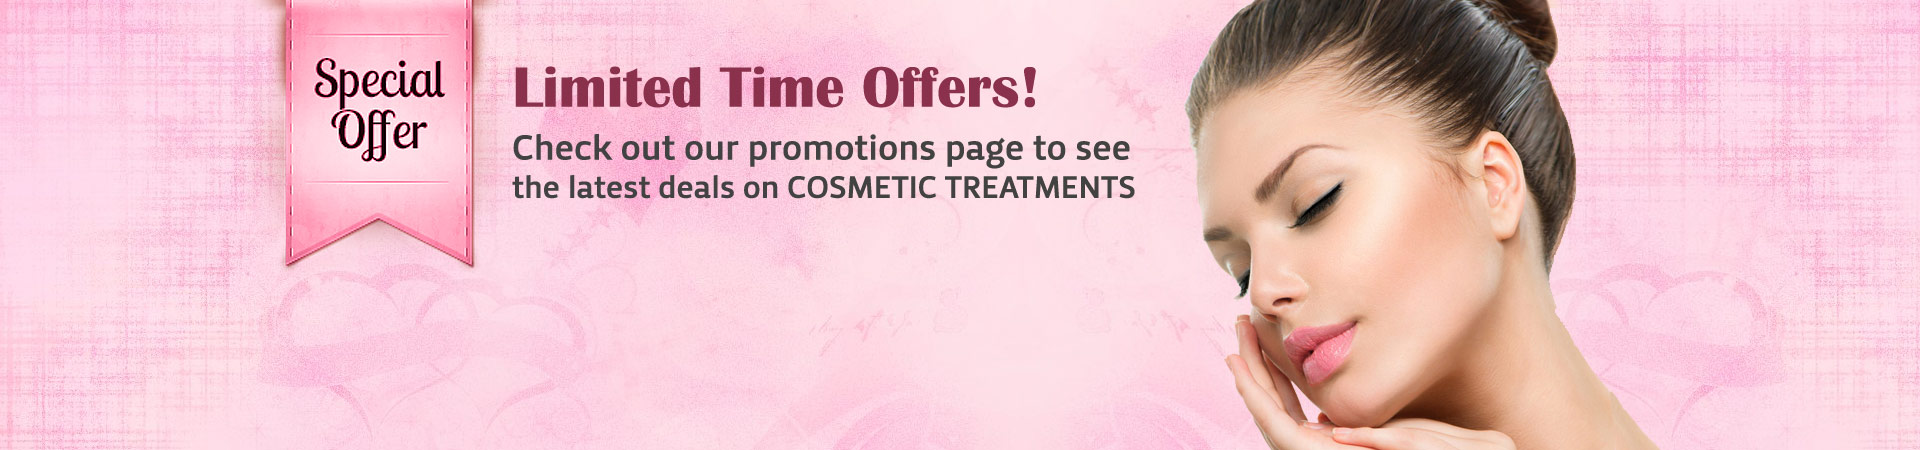 art of facial rejuvenation cosmetic promotions